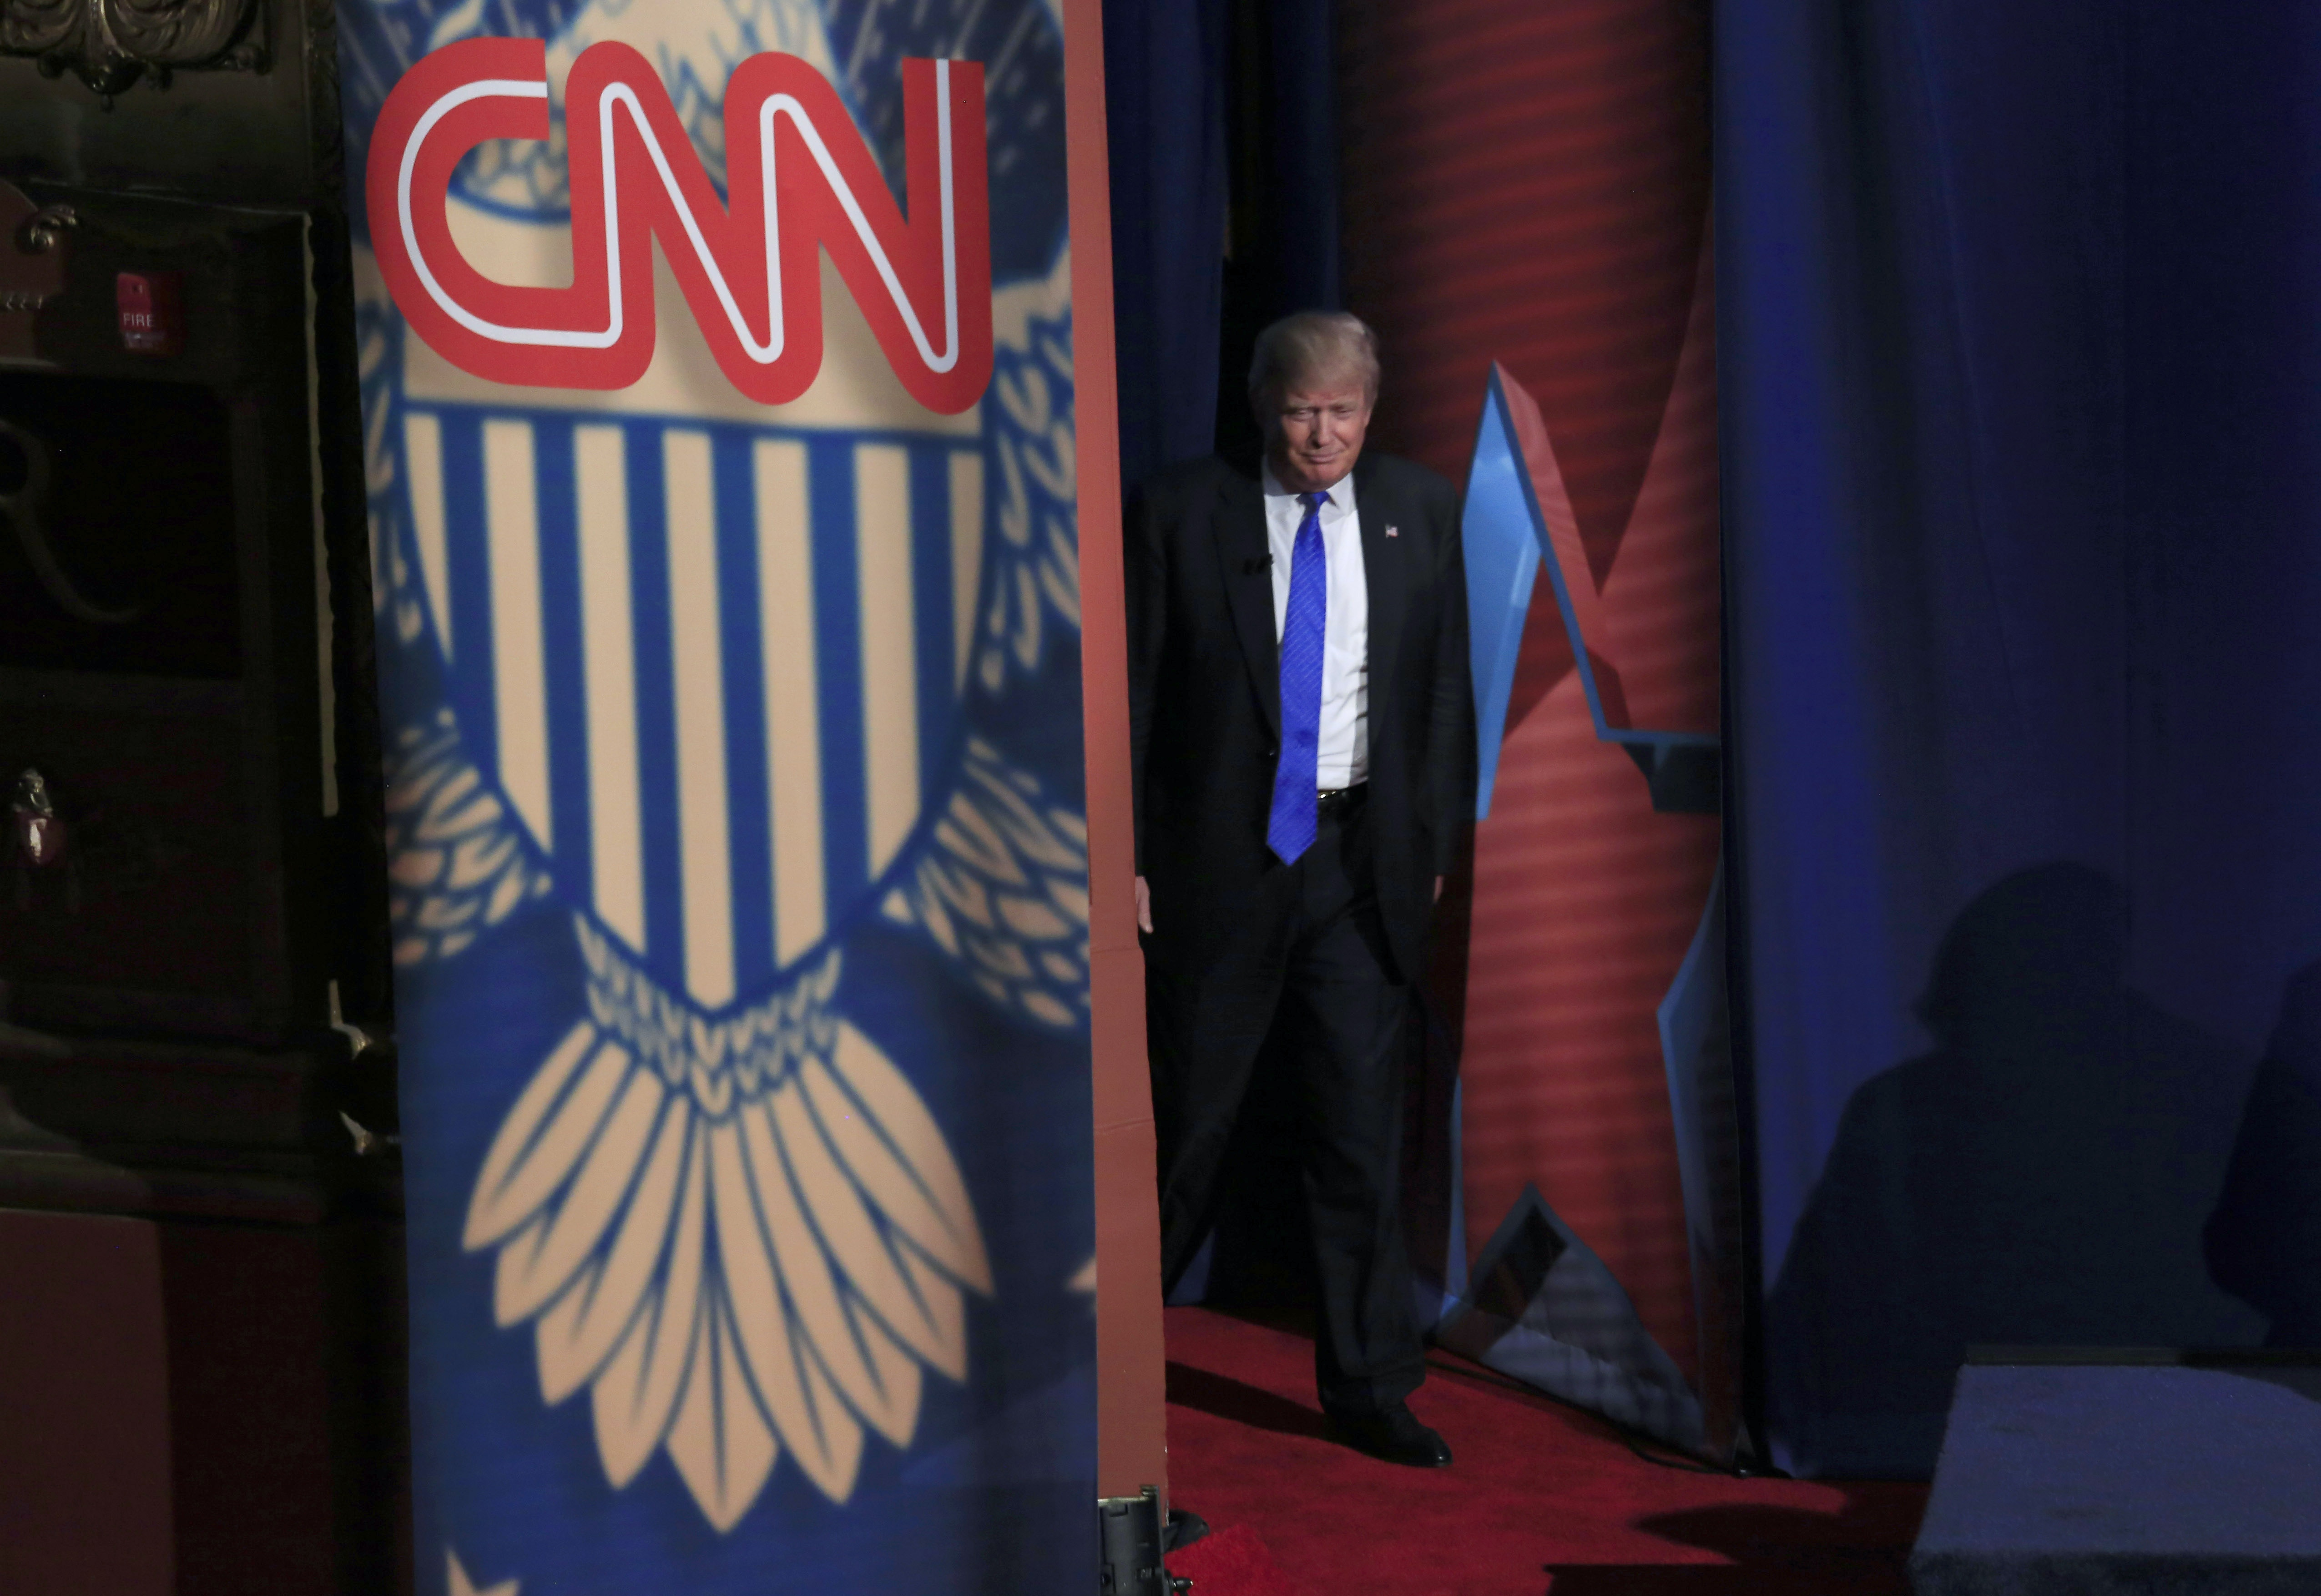 Man Charged With Threatening CNN Was Immediately Released